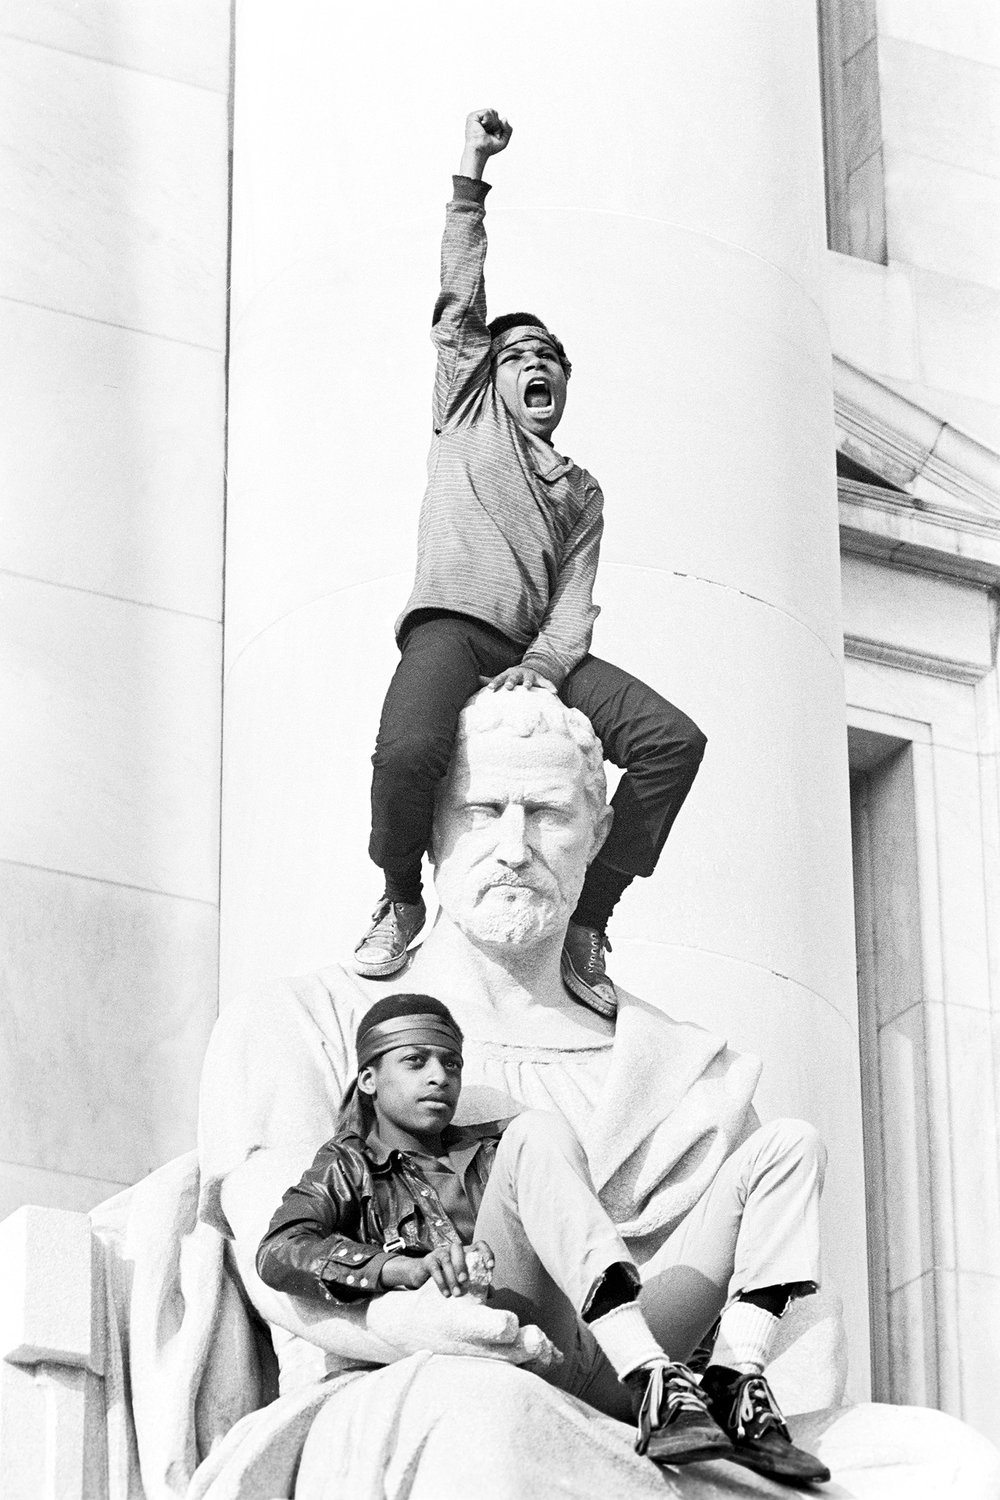 Image Above: A boy salutes the Panthers, New Haven County Courthouse, May 1, 1970. All images: Stephen Shames, Courtesy of Steven Kasher Gallery